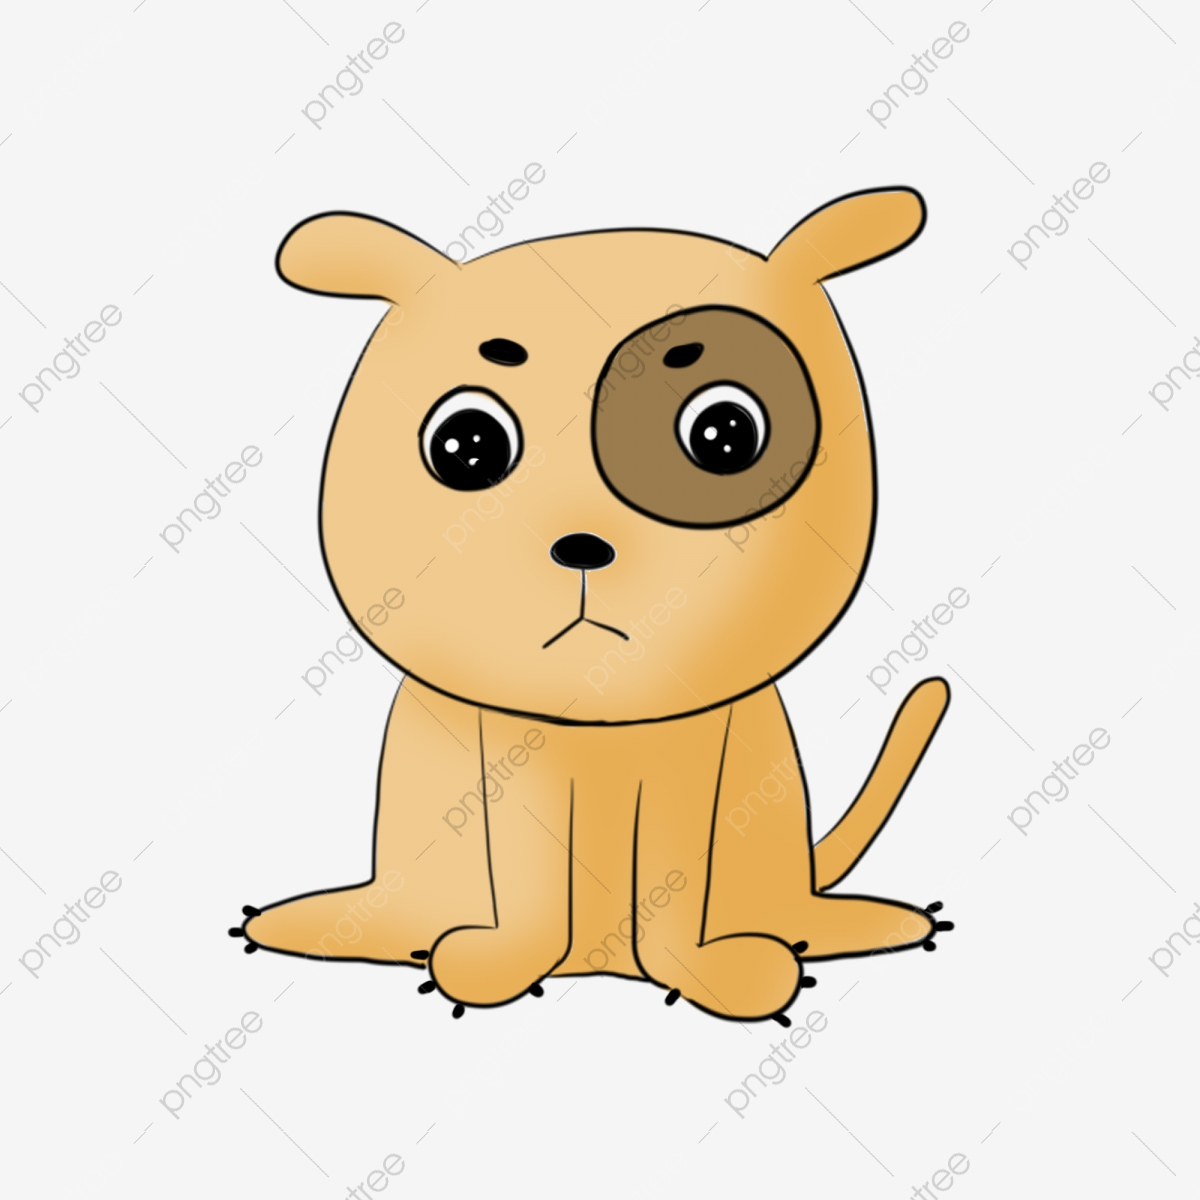 hight resolution of commercial use resource upgrade to premium plan and get license authorization upgradenow vector bear equals sign sign clipart